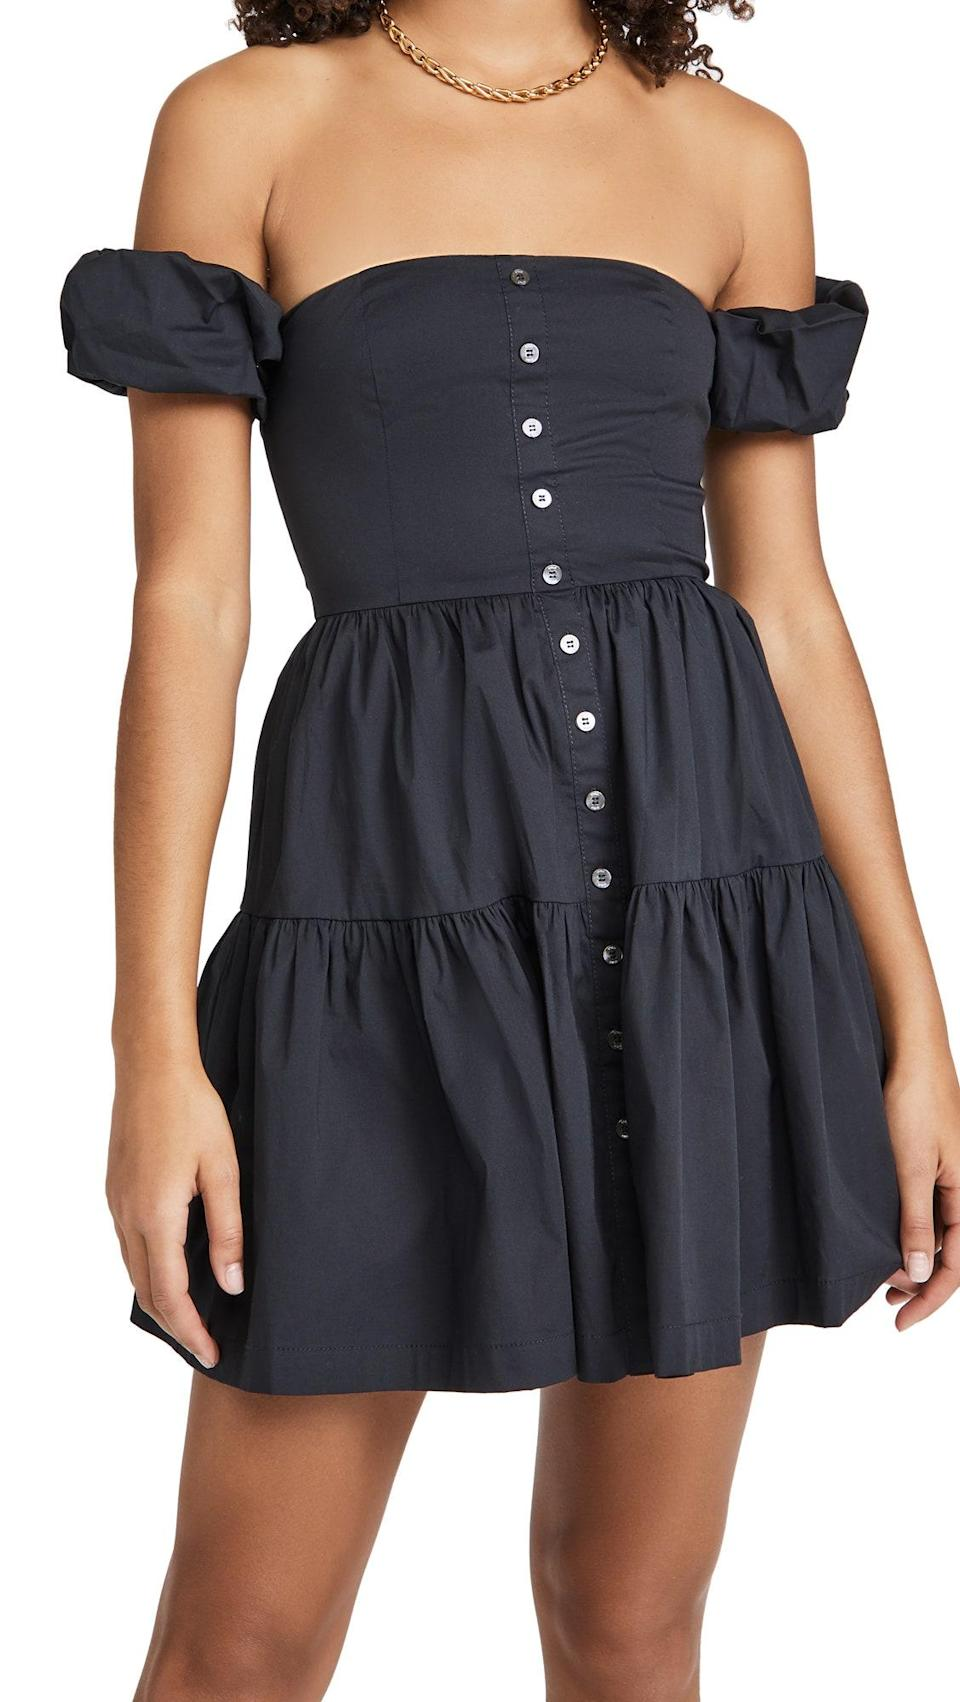 """Does it get any cuter than this tiered, button-front, off-the-shoulder dress from cult-favorite brand Staud? We think not. $245, Shopbop. <a href=""""https://www.shopbop.com/mini-elio-dress-staud/vp/v=1/1594149060.htm"""" rel=""""nofollow noopener"""" target=""""_blank"""" data-ylk=""""slk:Get it now!"""" class=""""link rapid-noclick-resp"""">Get it now!</a>"""